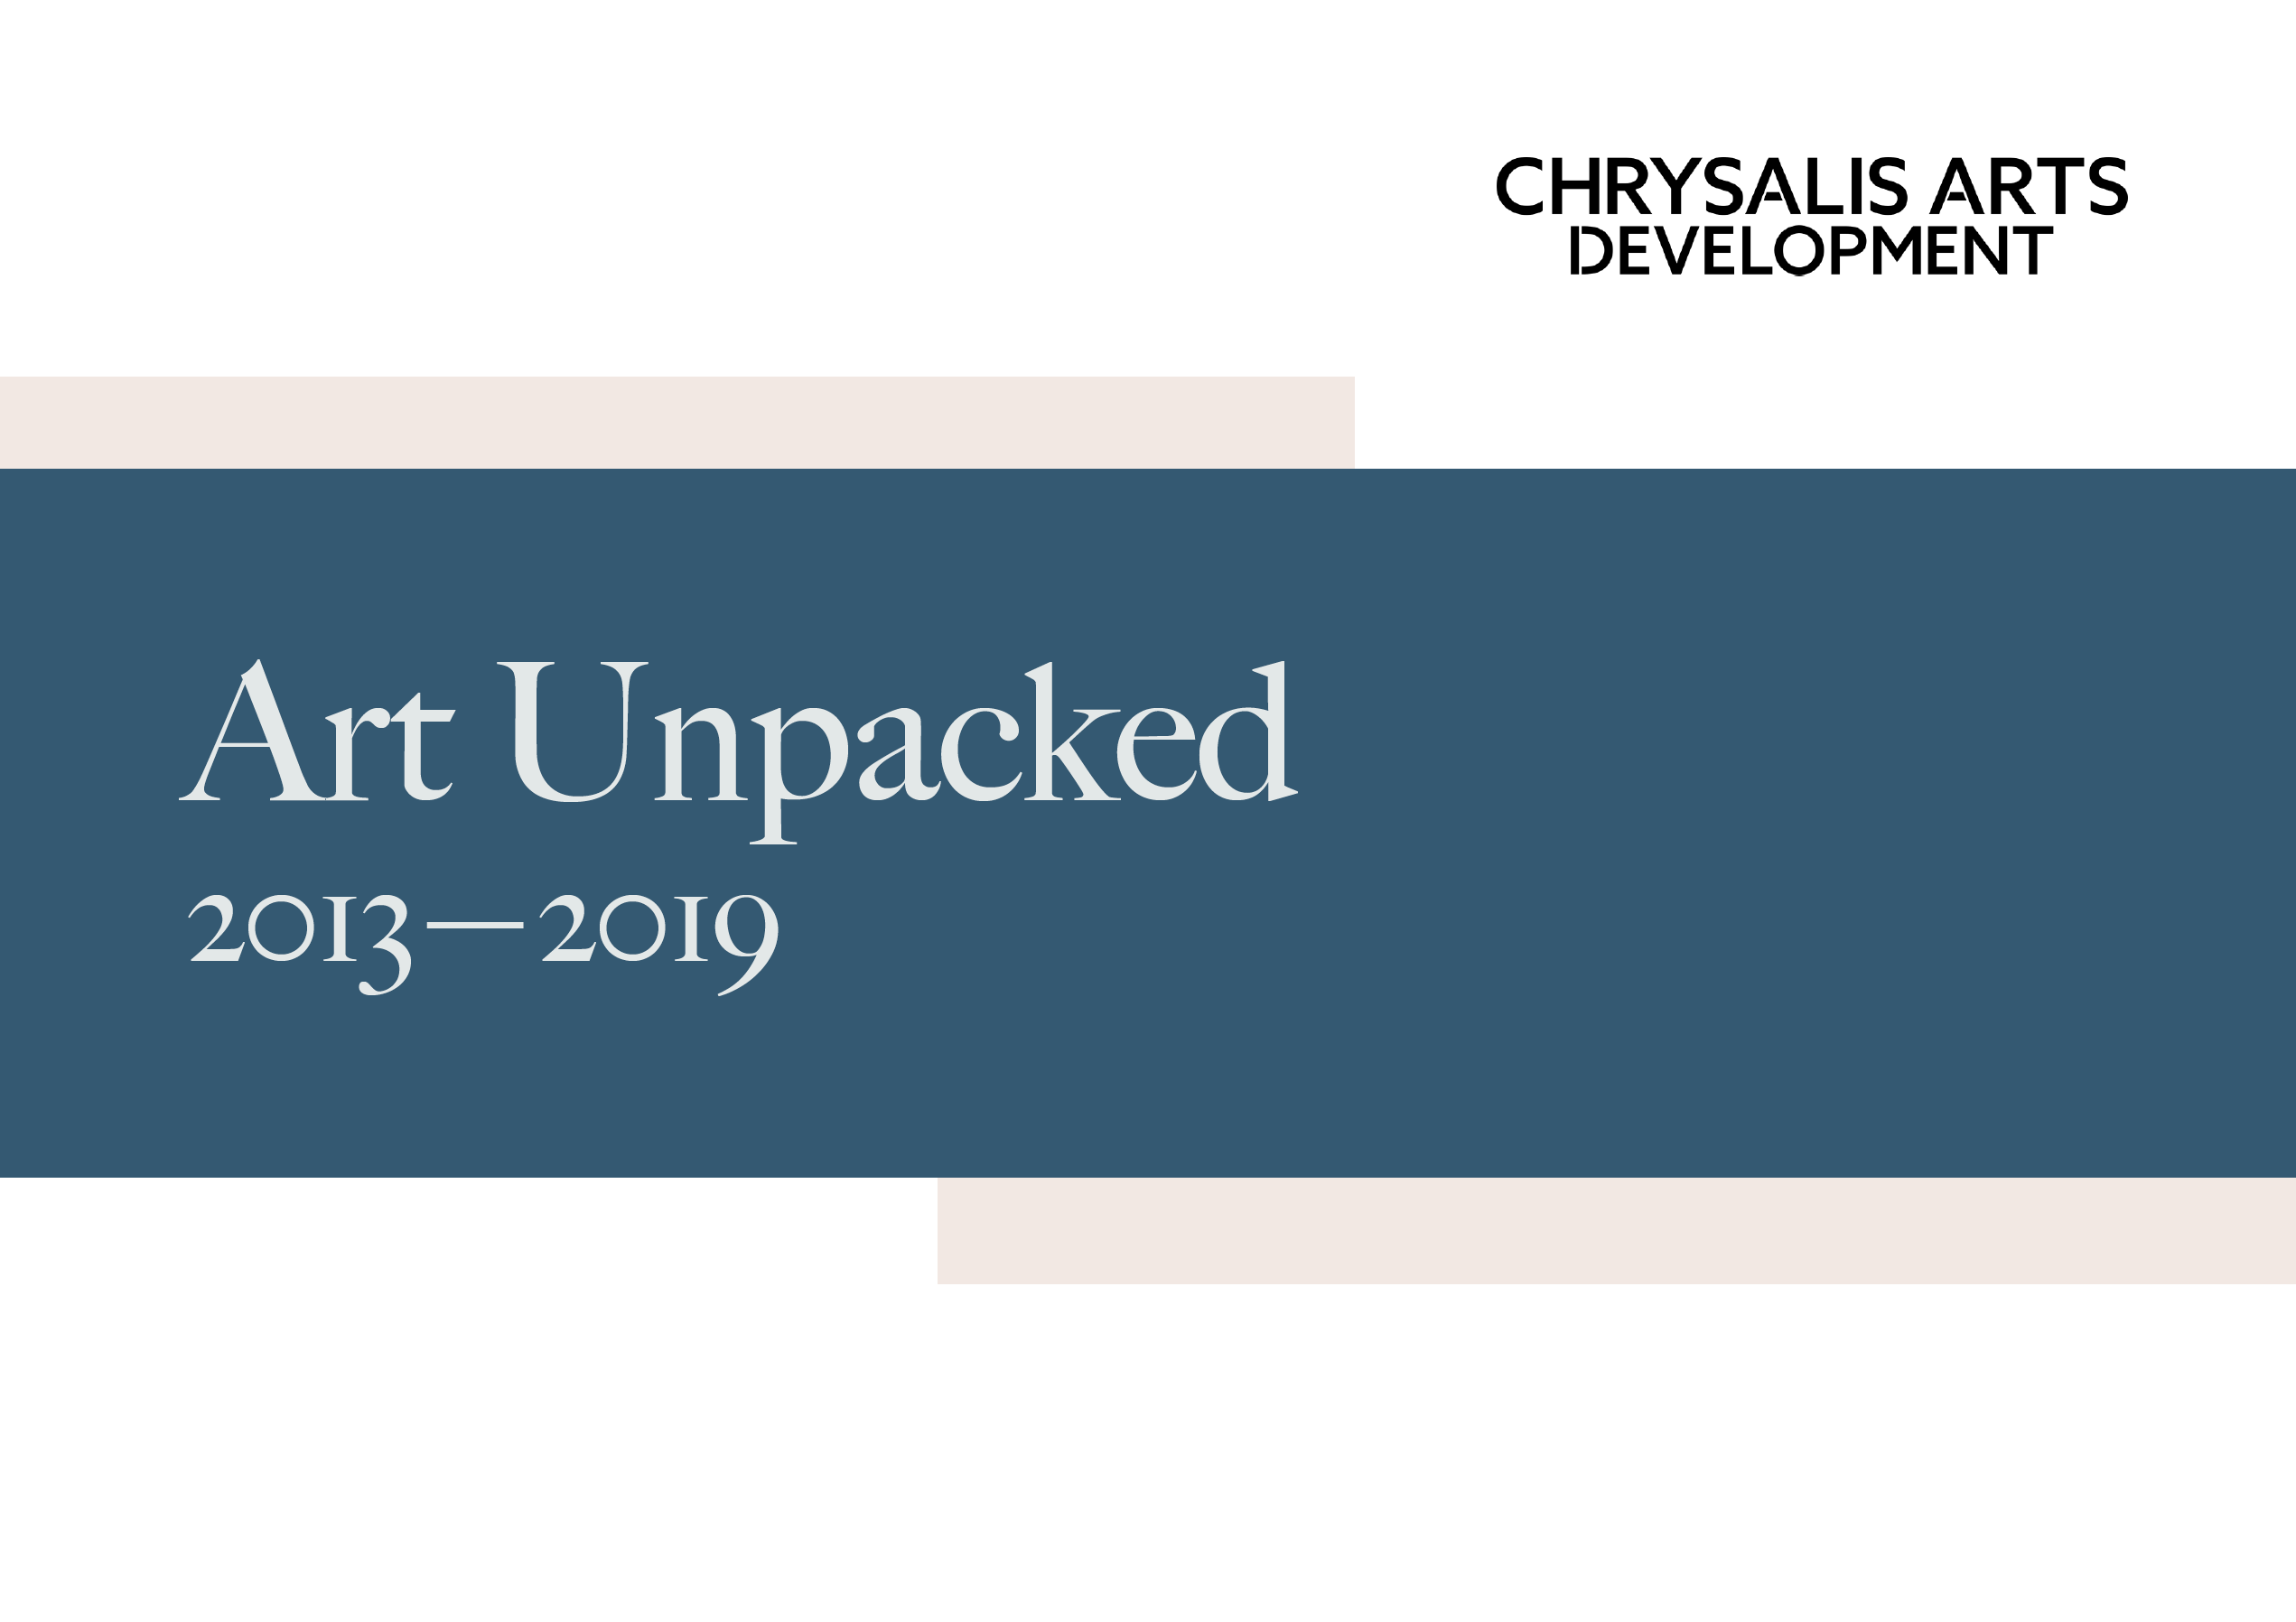 Art Unpacked Report